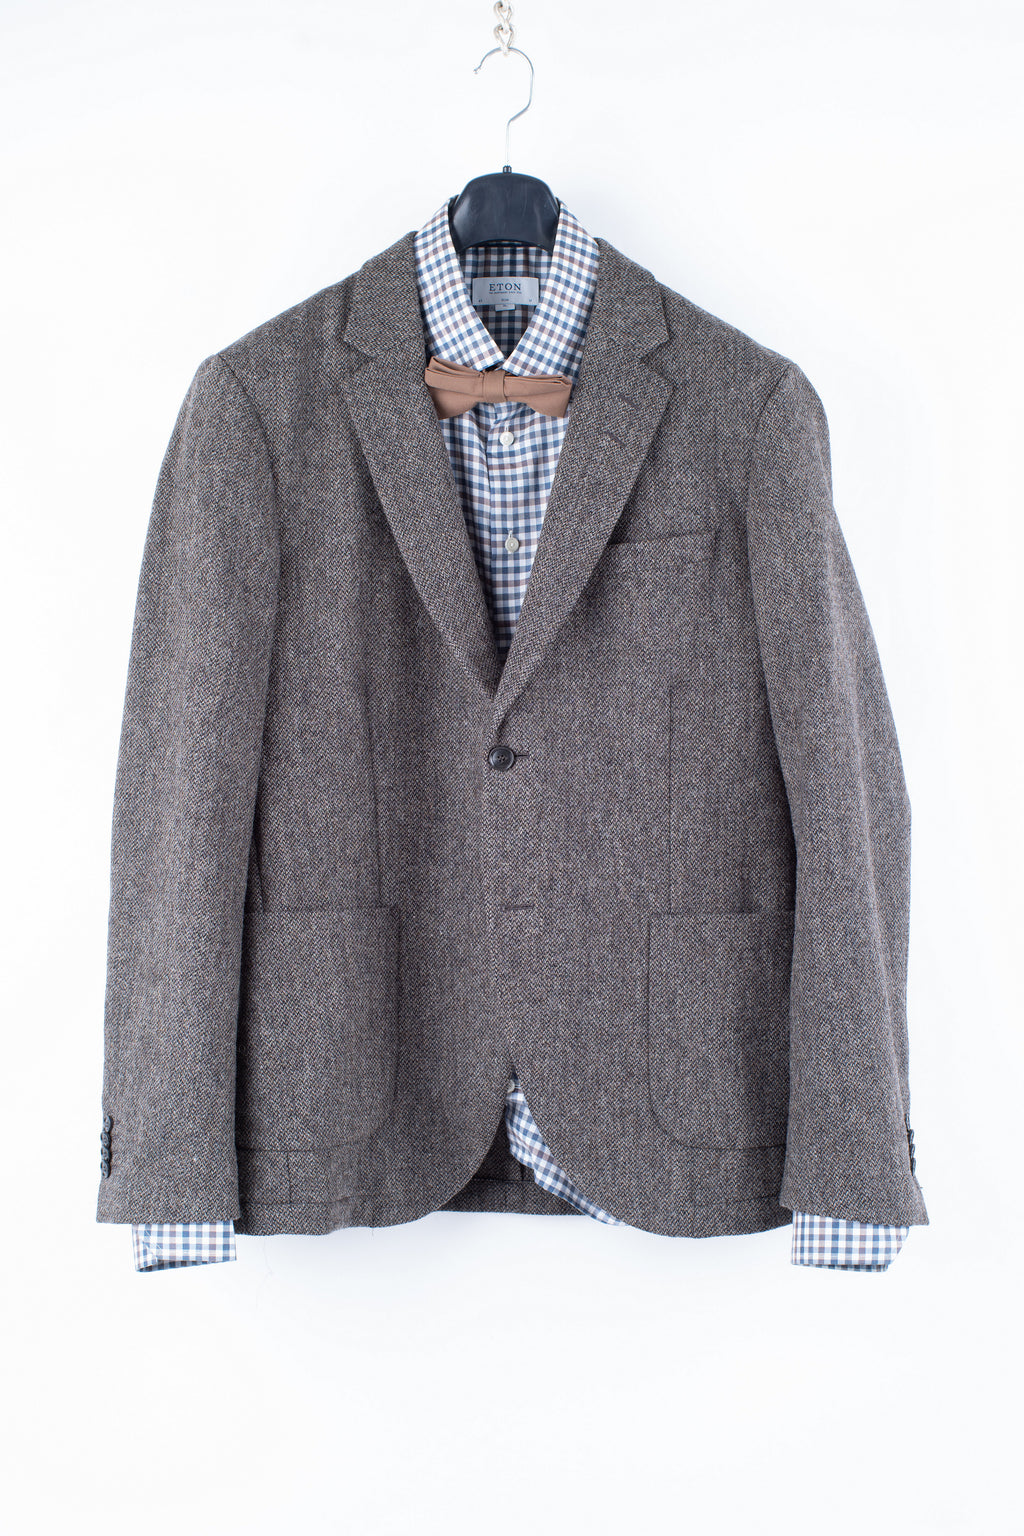 Tiger Of Sweden Tweed Wool Sport Coat, US 44R, EU 54